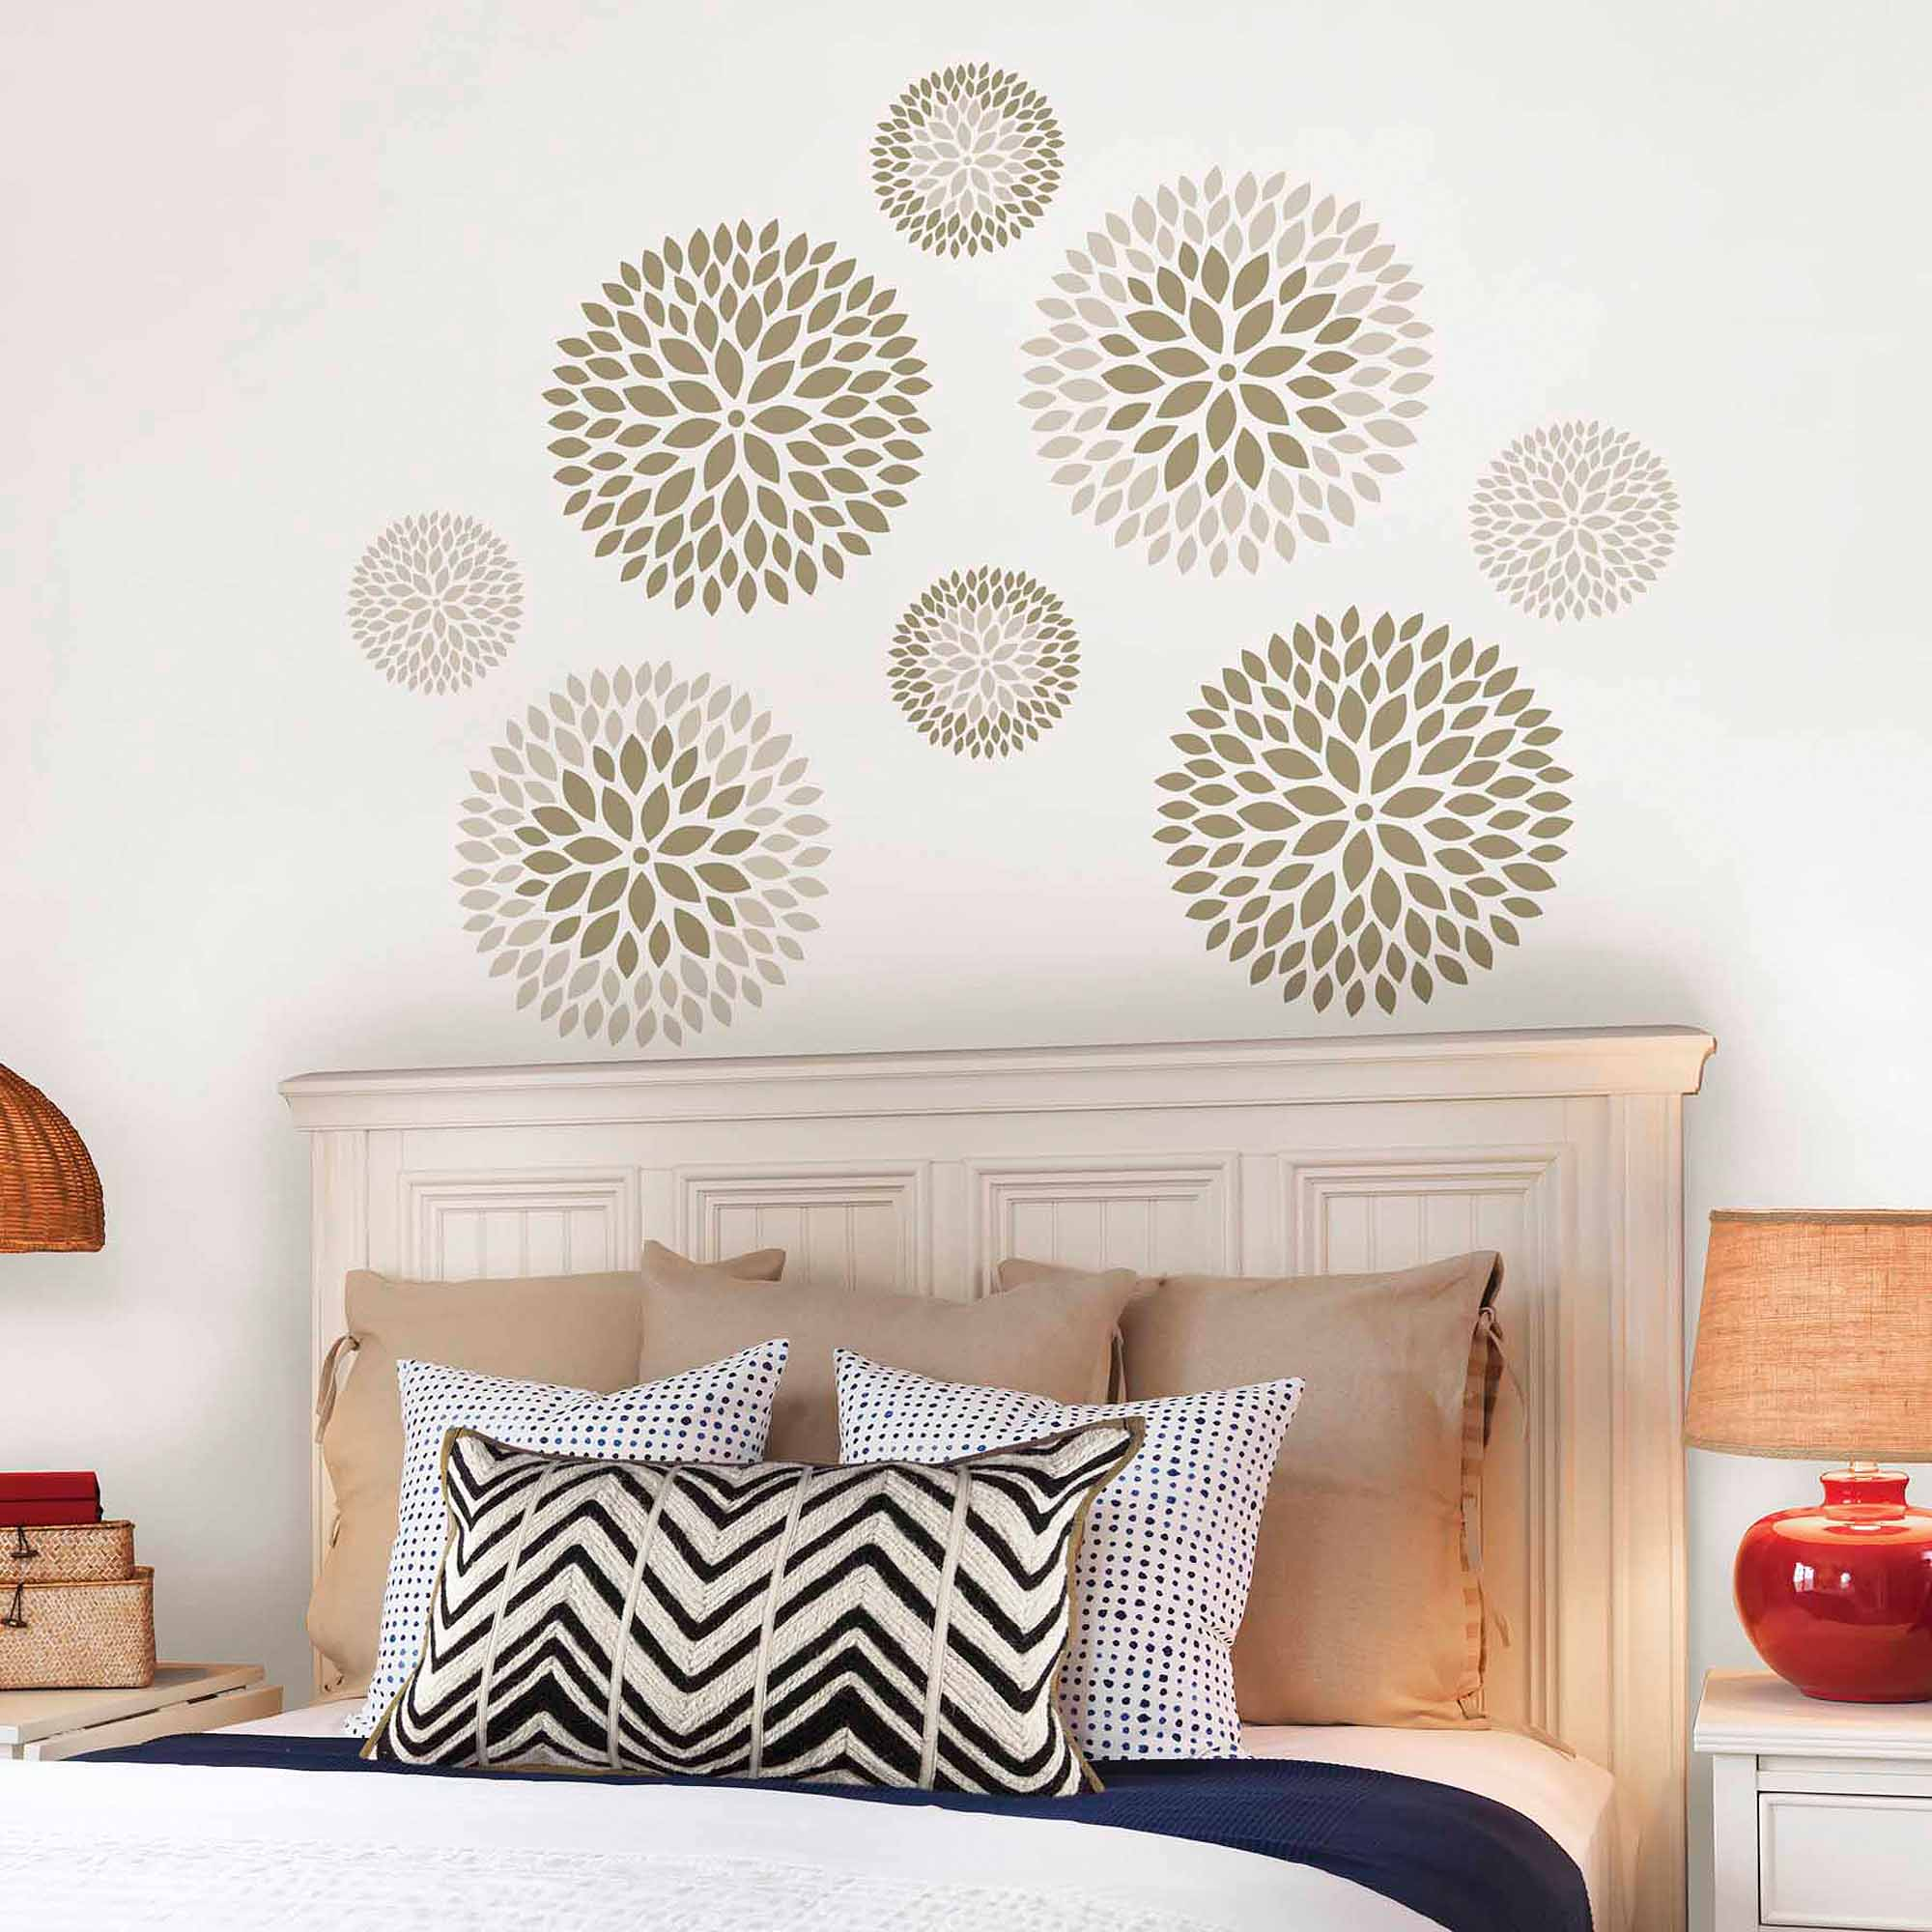 wallpops chrysanthemum wall art decals kit - walmart.com ZMQVGWU